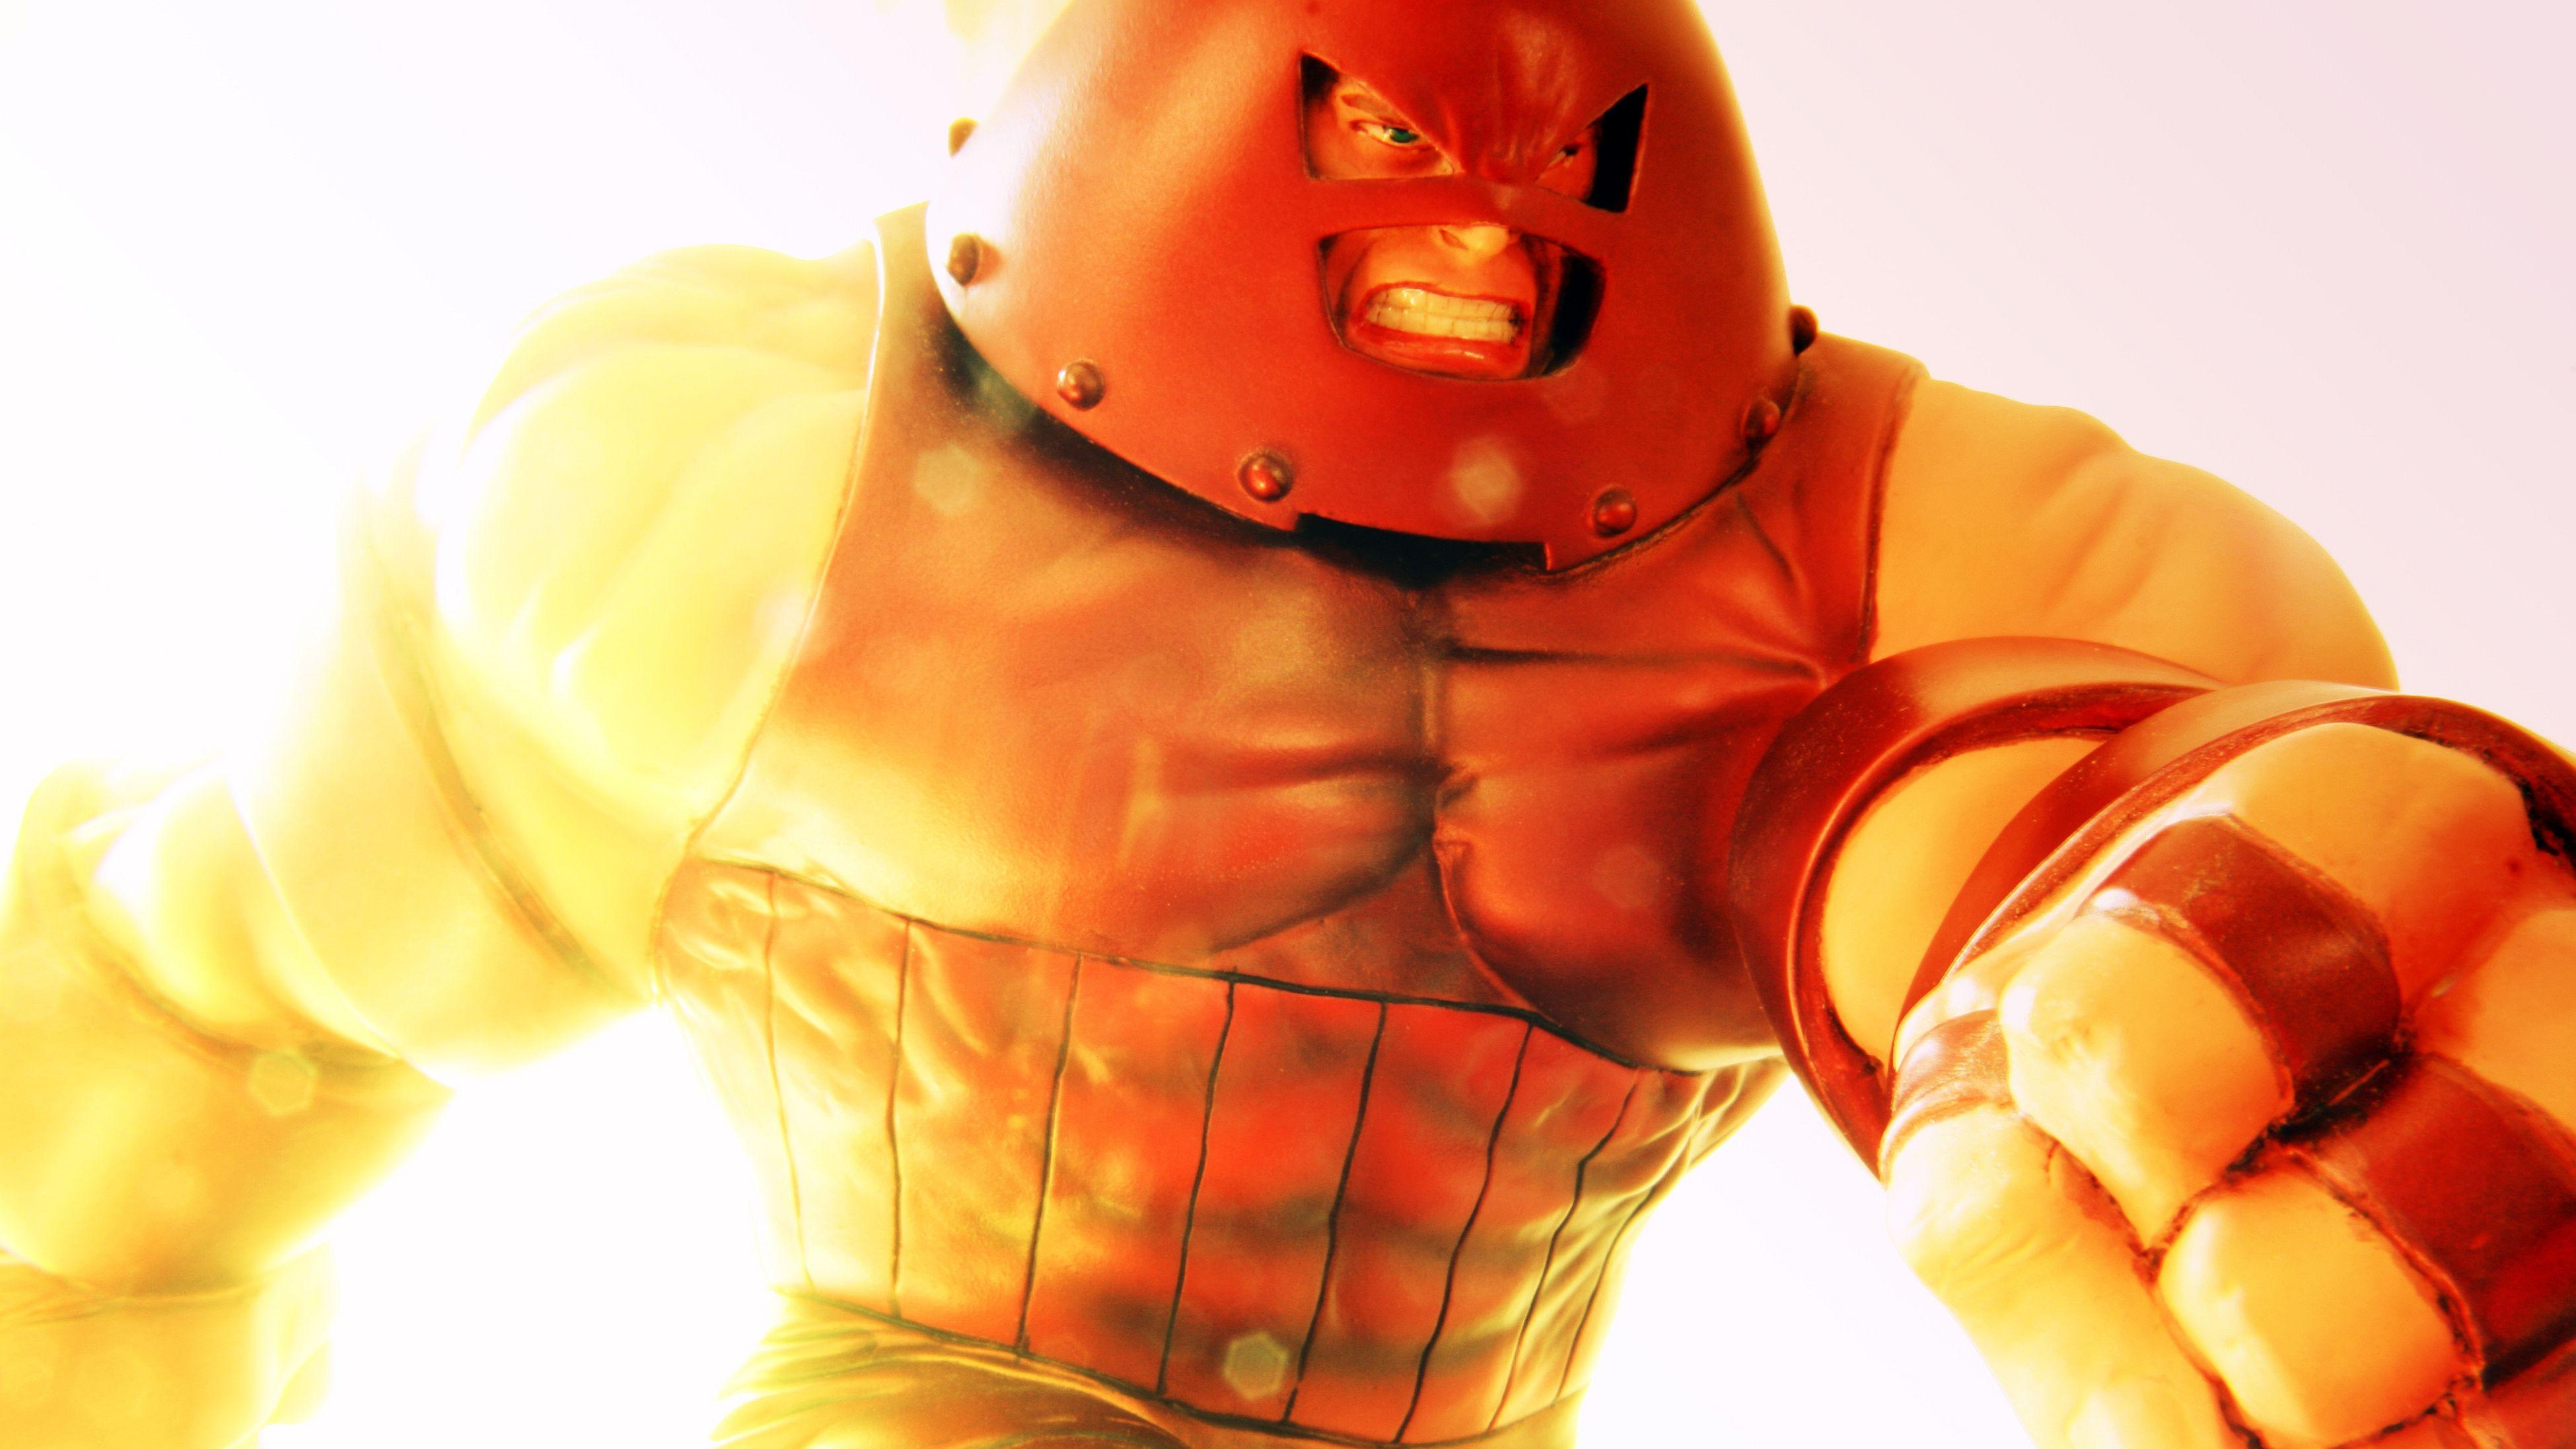 Juggernaut 4k Ultra HD Wallpaper and Background Image | 3900x2194 ...